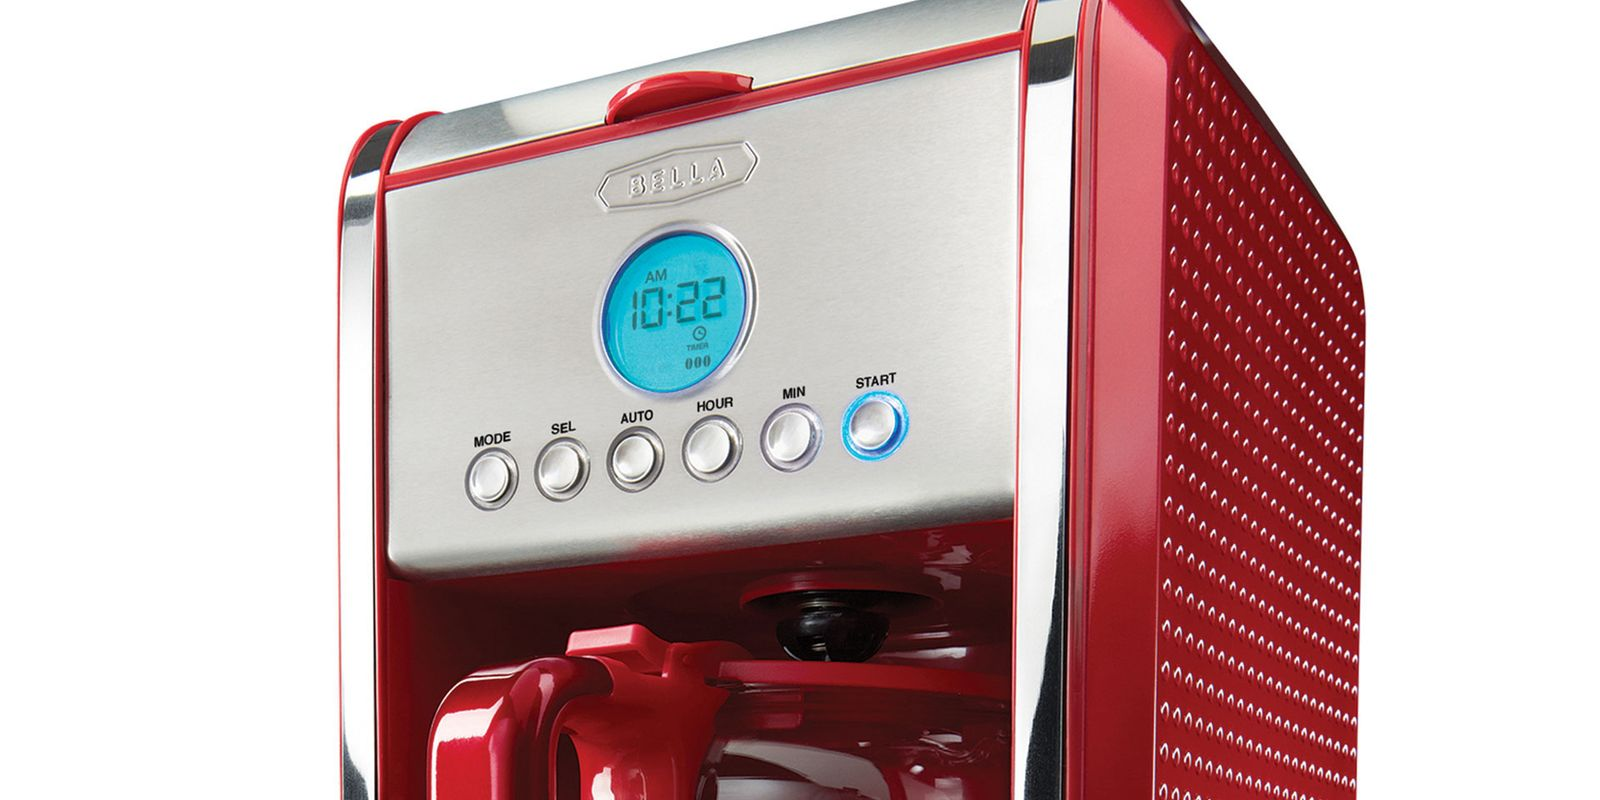 550095b68848d ghk bella dots collection 12 cup programmable coffeemaker s2 Target Redcoffee Maker